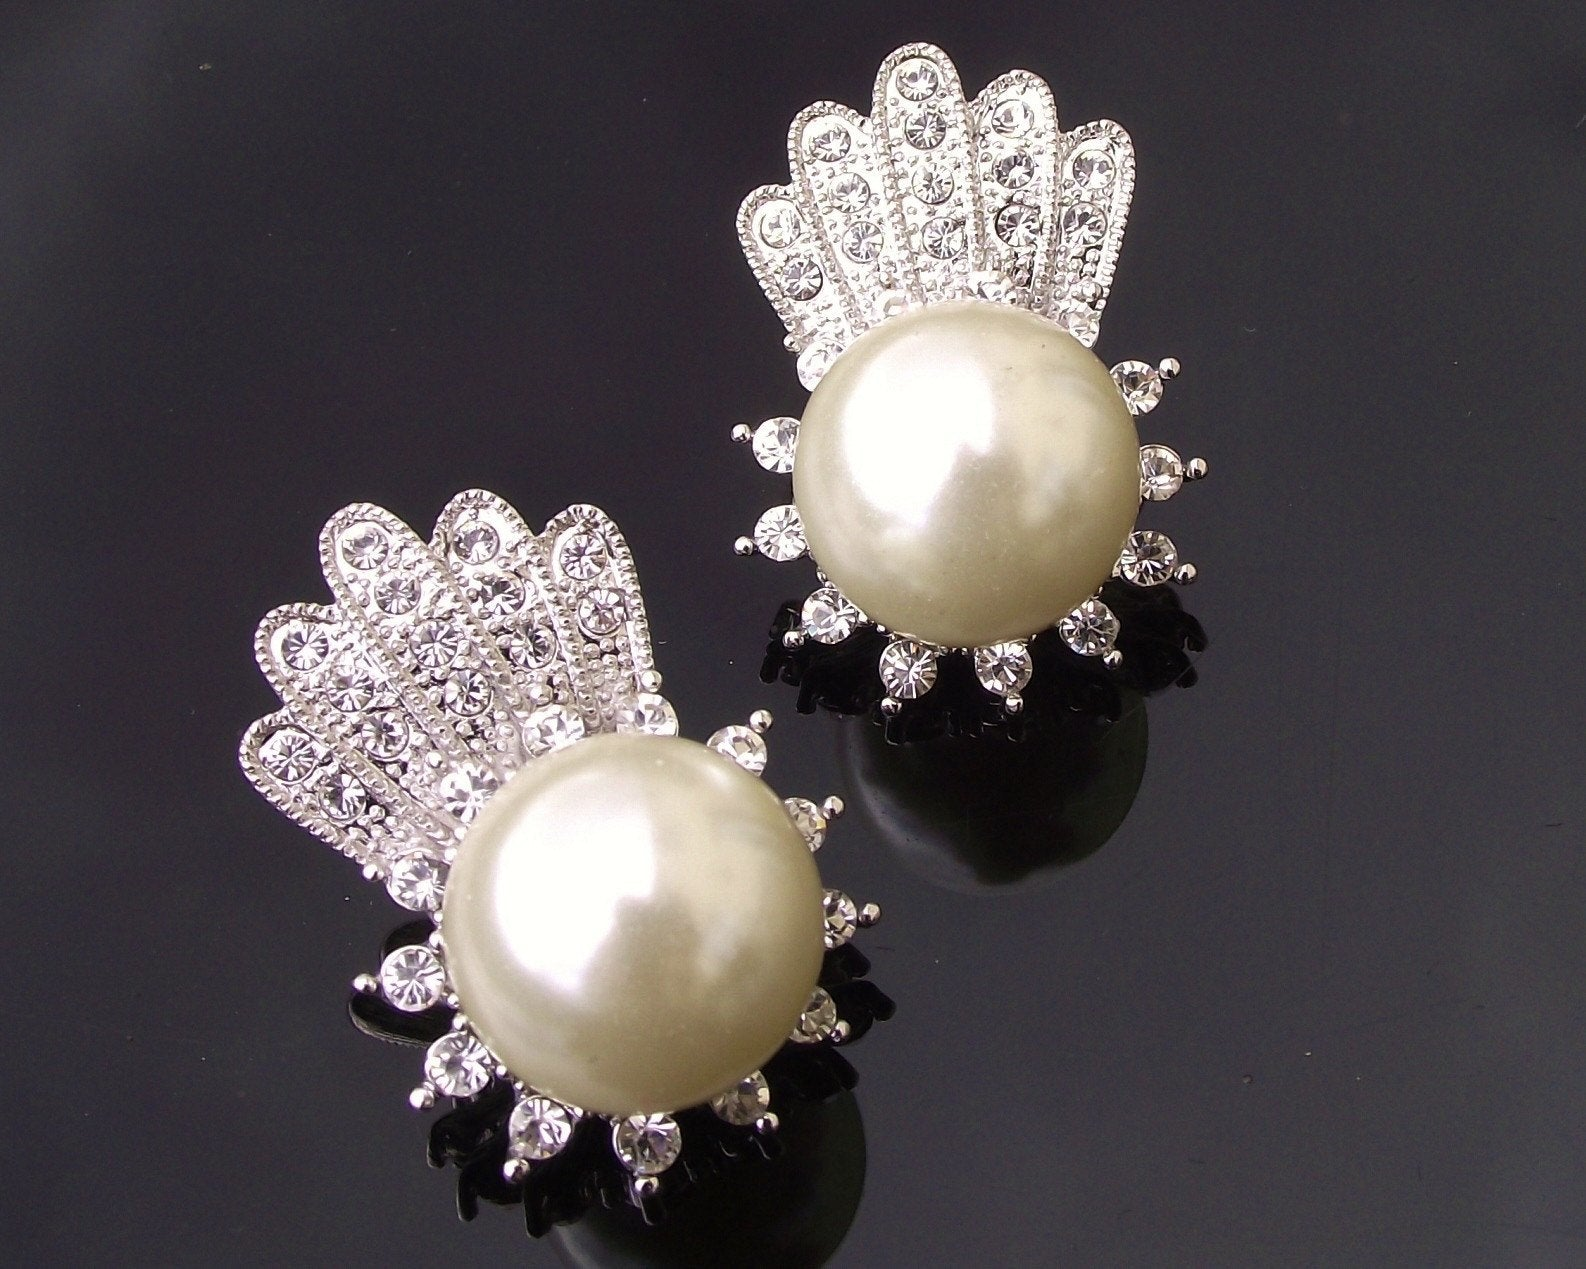 Wedding Earrings - Stud Style Pearl & Crystal Earrings, Cameron